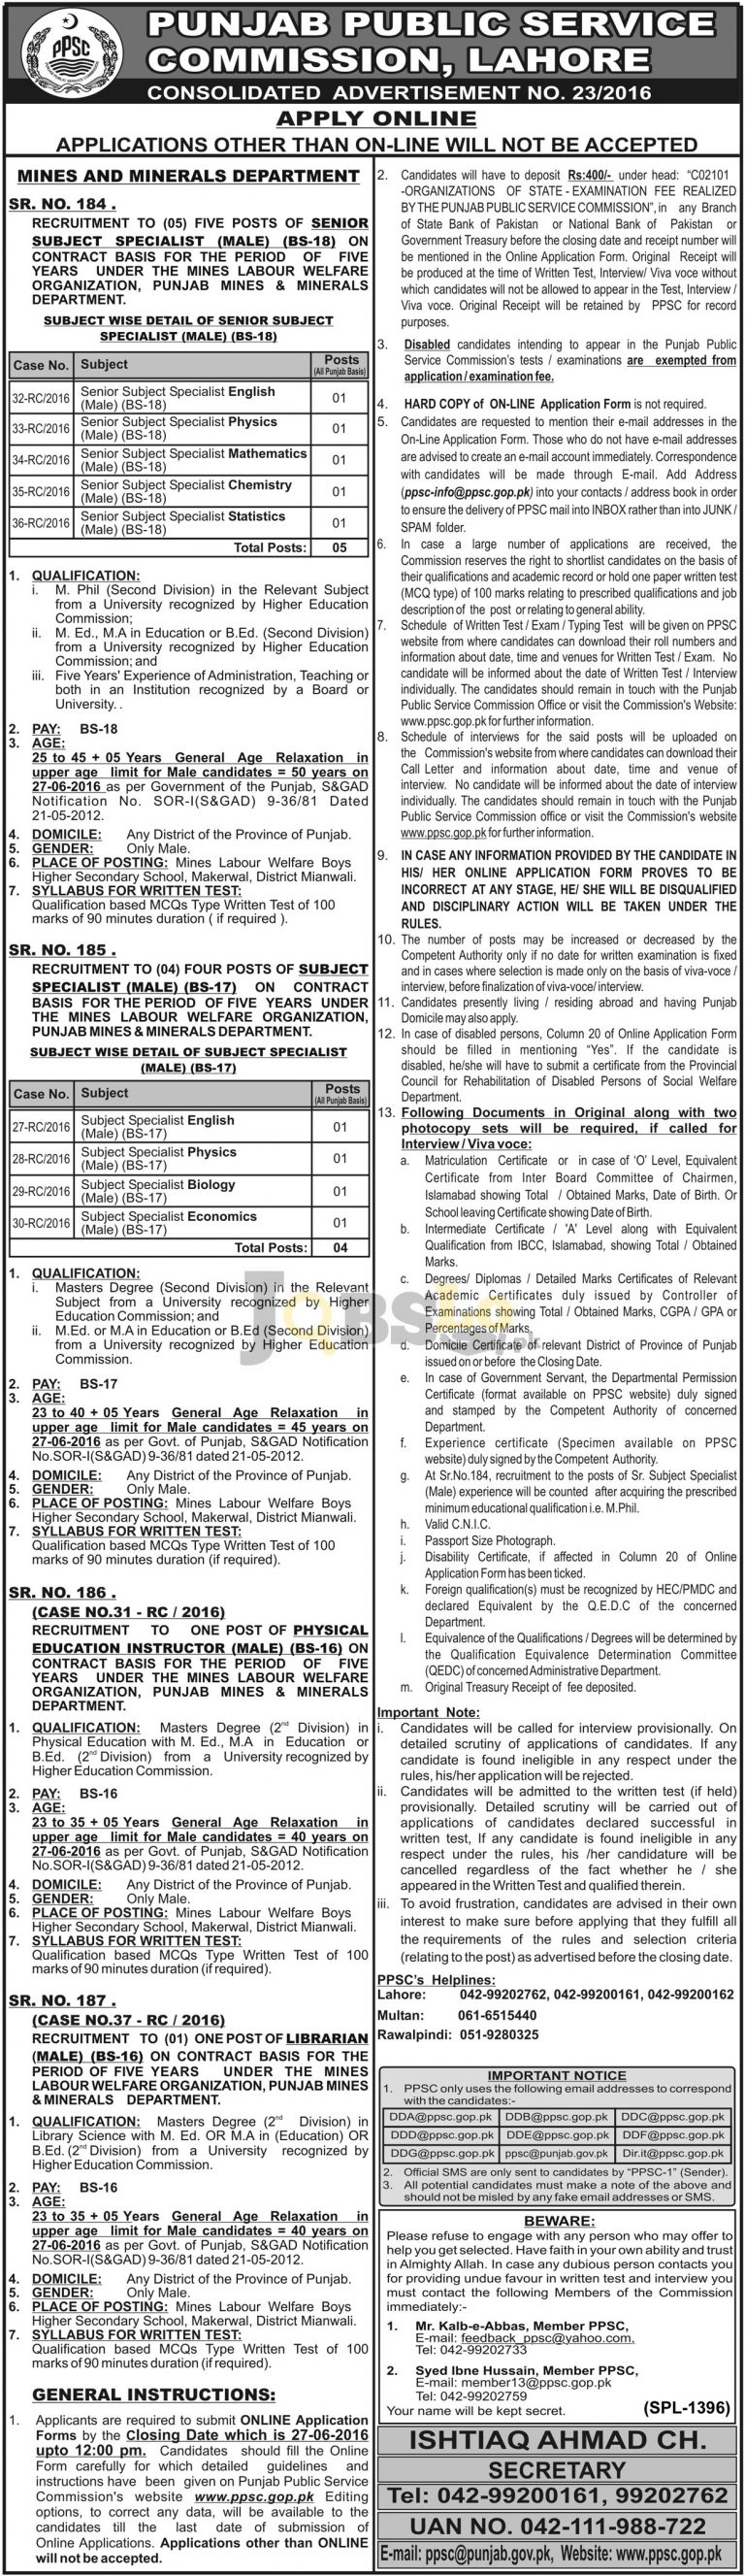 PPSC Mines & Minerals Department Jobs 2016 Apply Online Latest Add